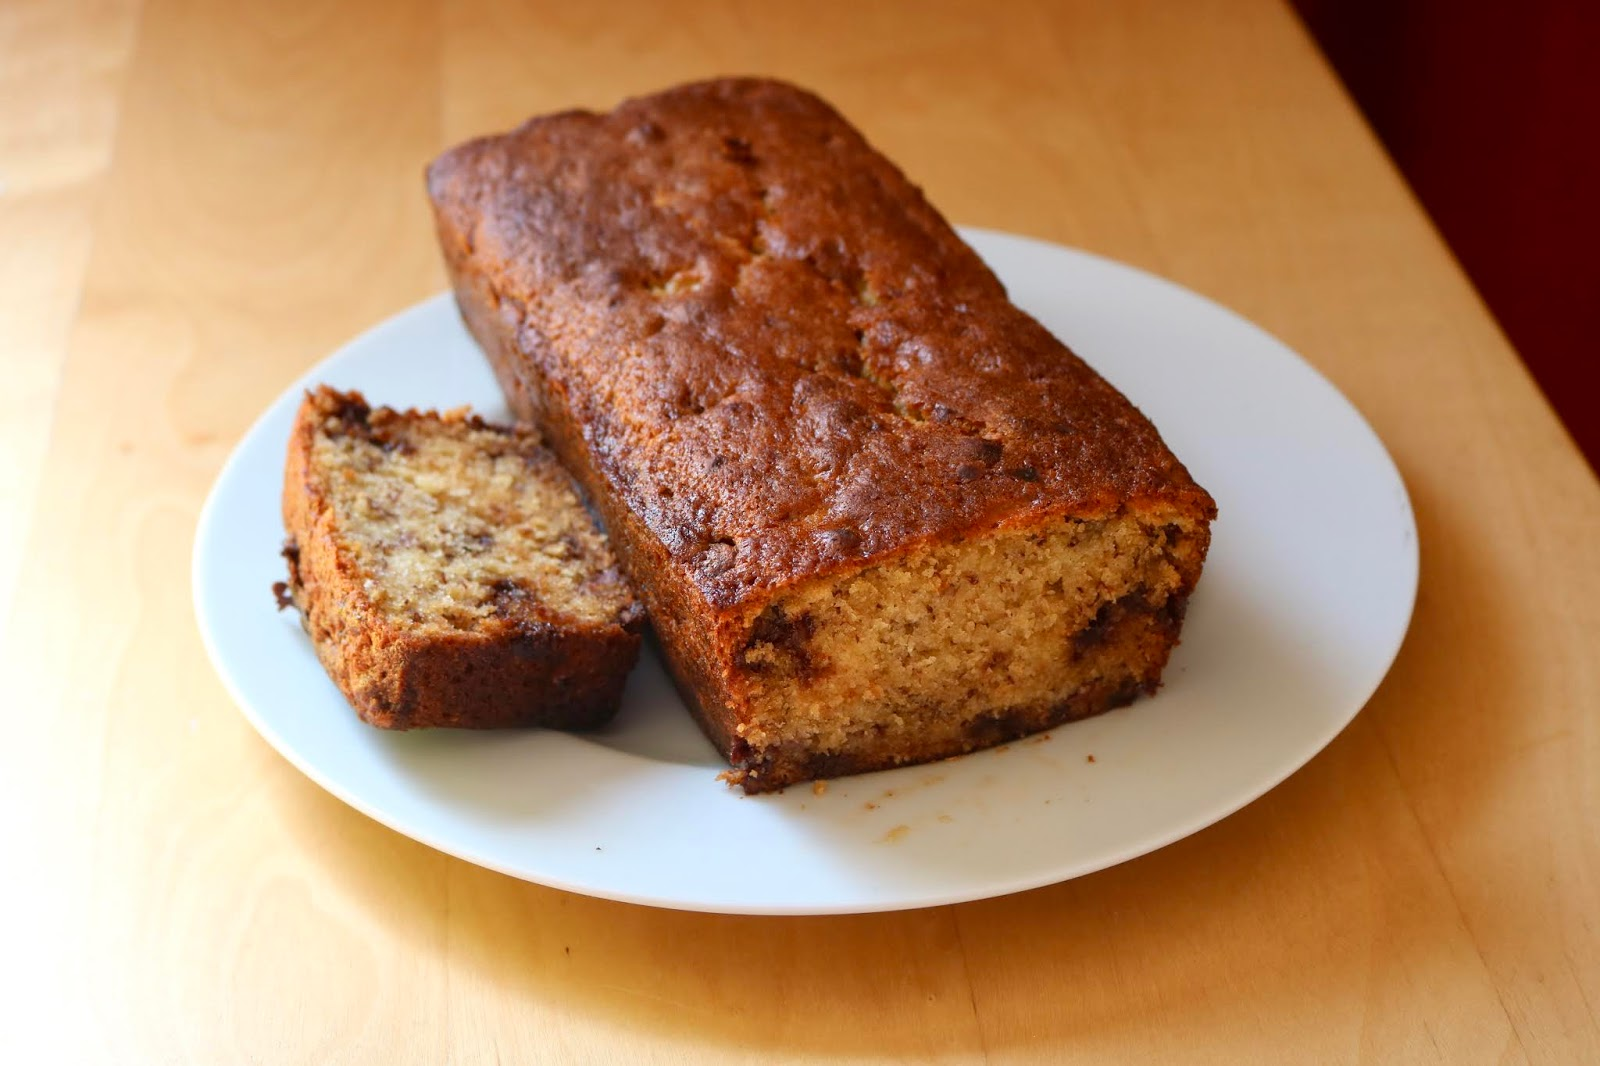 Chocolate & Banana Loaf Recipe